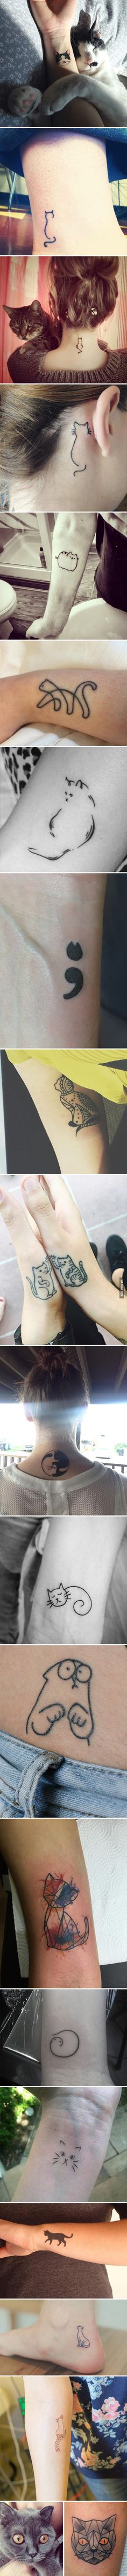 "20 Minimalistic ""Cattoos"" For Cat Lovers. I'm not into tattoos, but these designs are really cute."